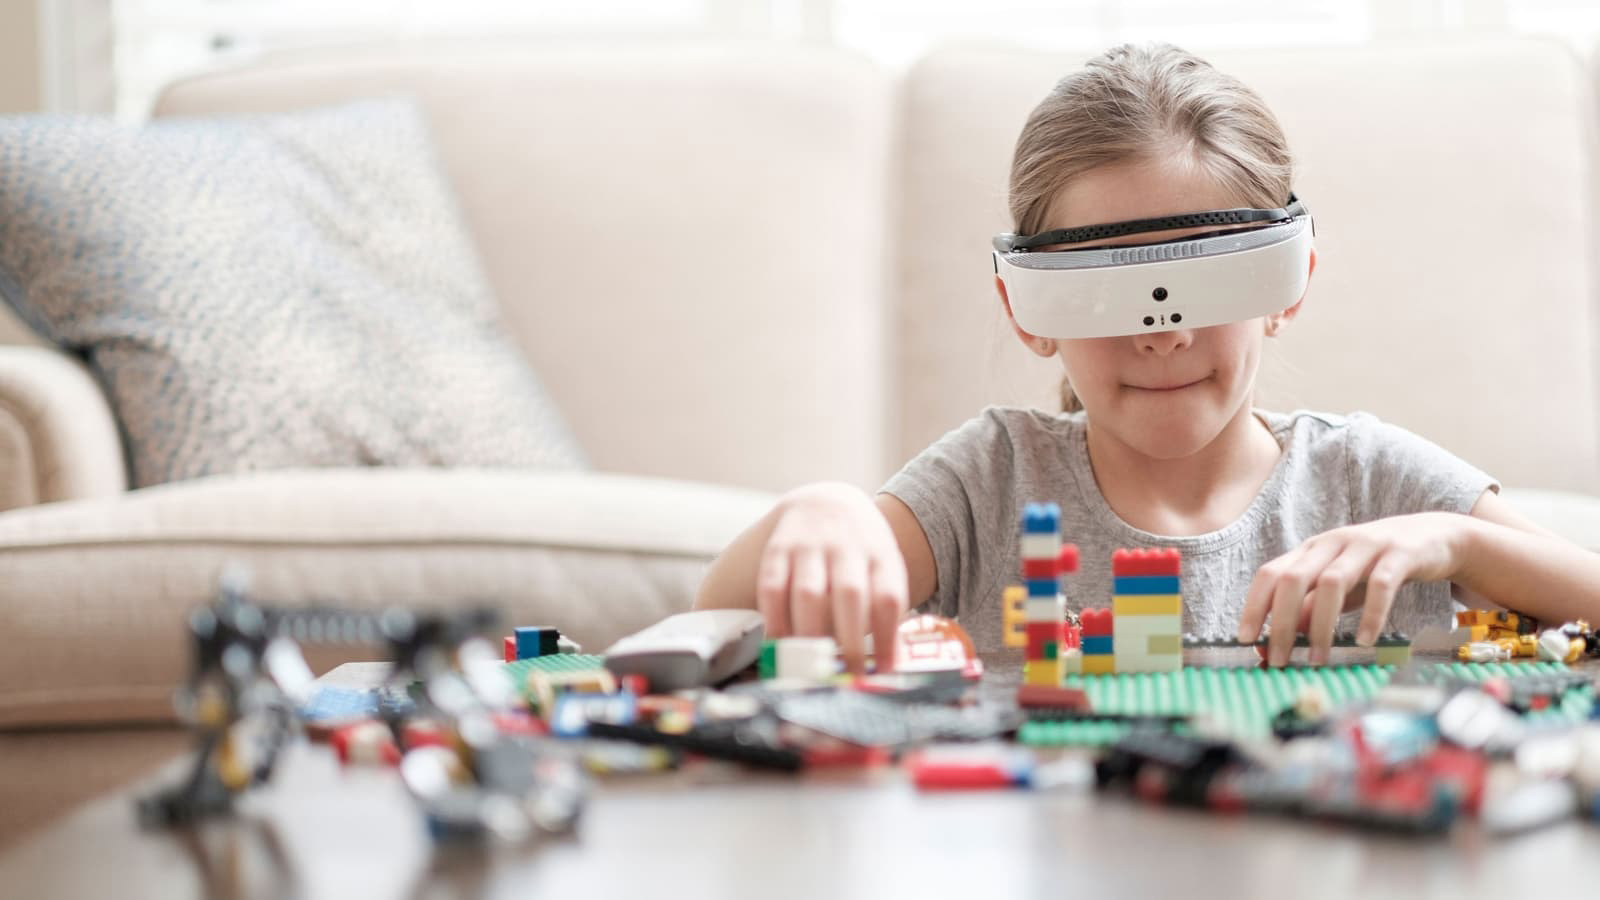 young girl plays with legos while wearing esight visor